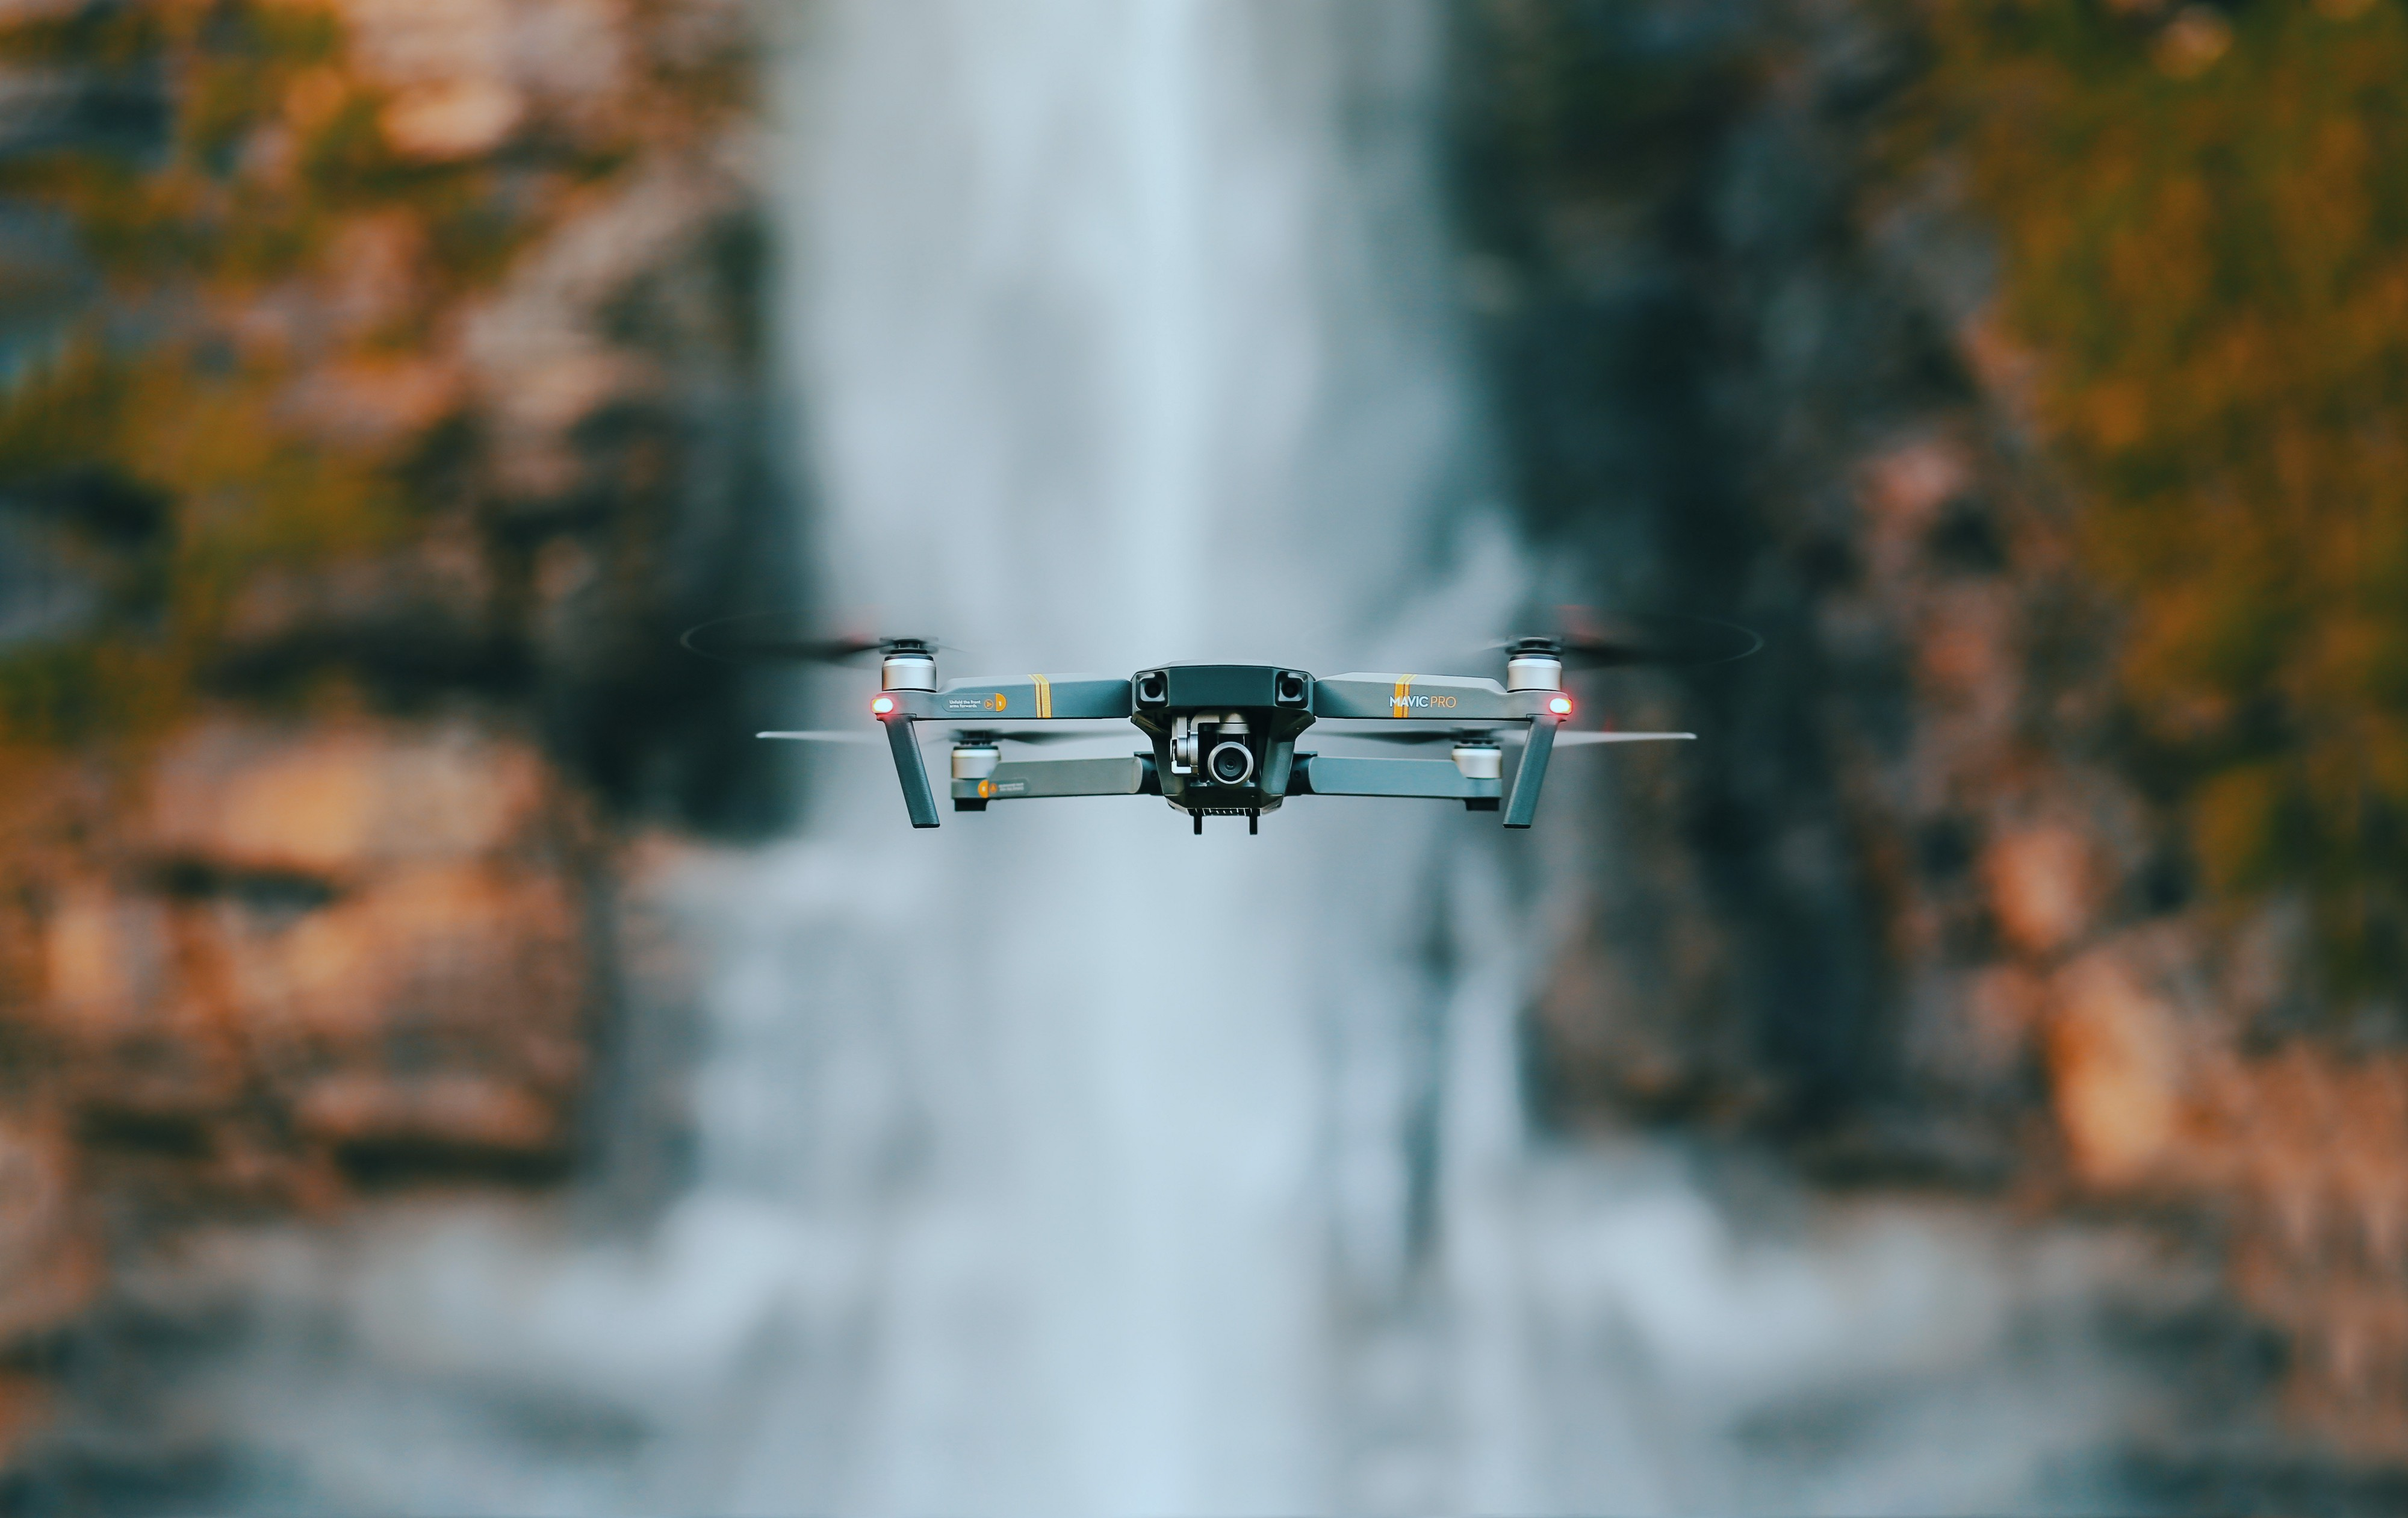 HOW To Do A Vision Calibration For DJI Mavic Pro Using DJI Assistant